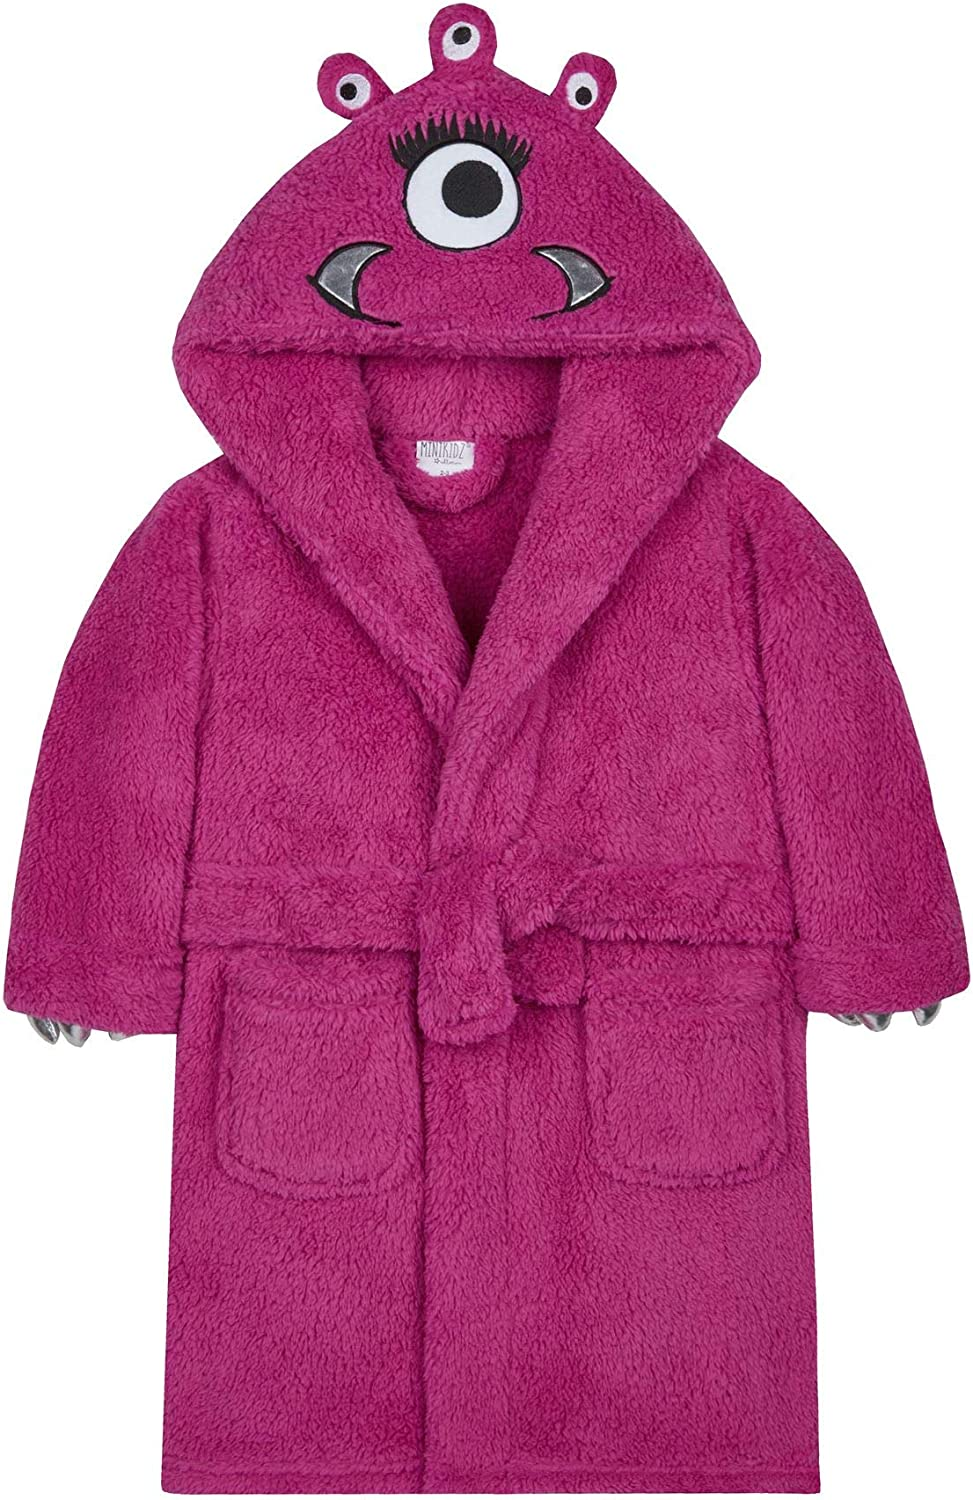 Kids Monster Time sale Ranking TOP12 Dressing Gown 2-3 Pink 18C469 Years